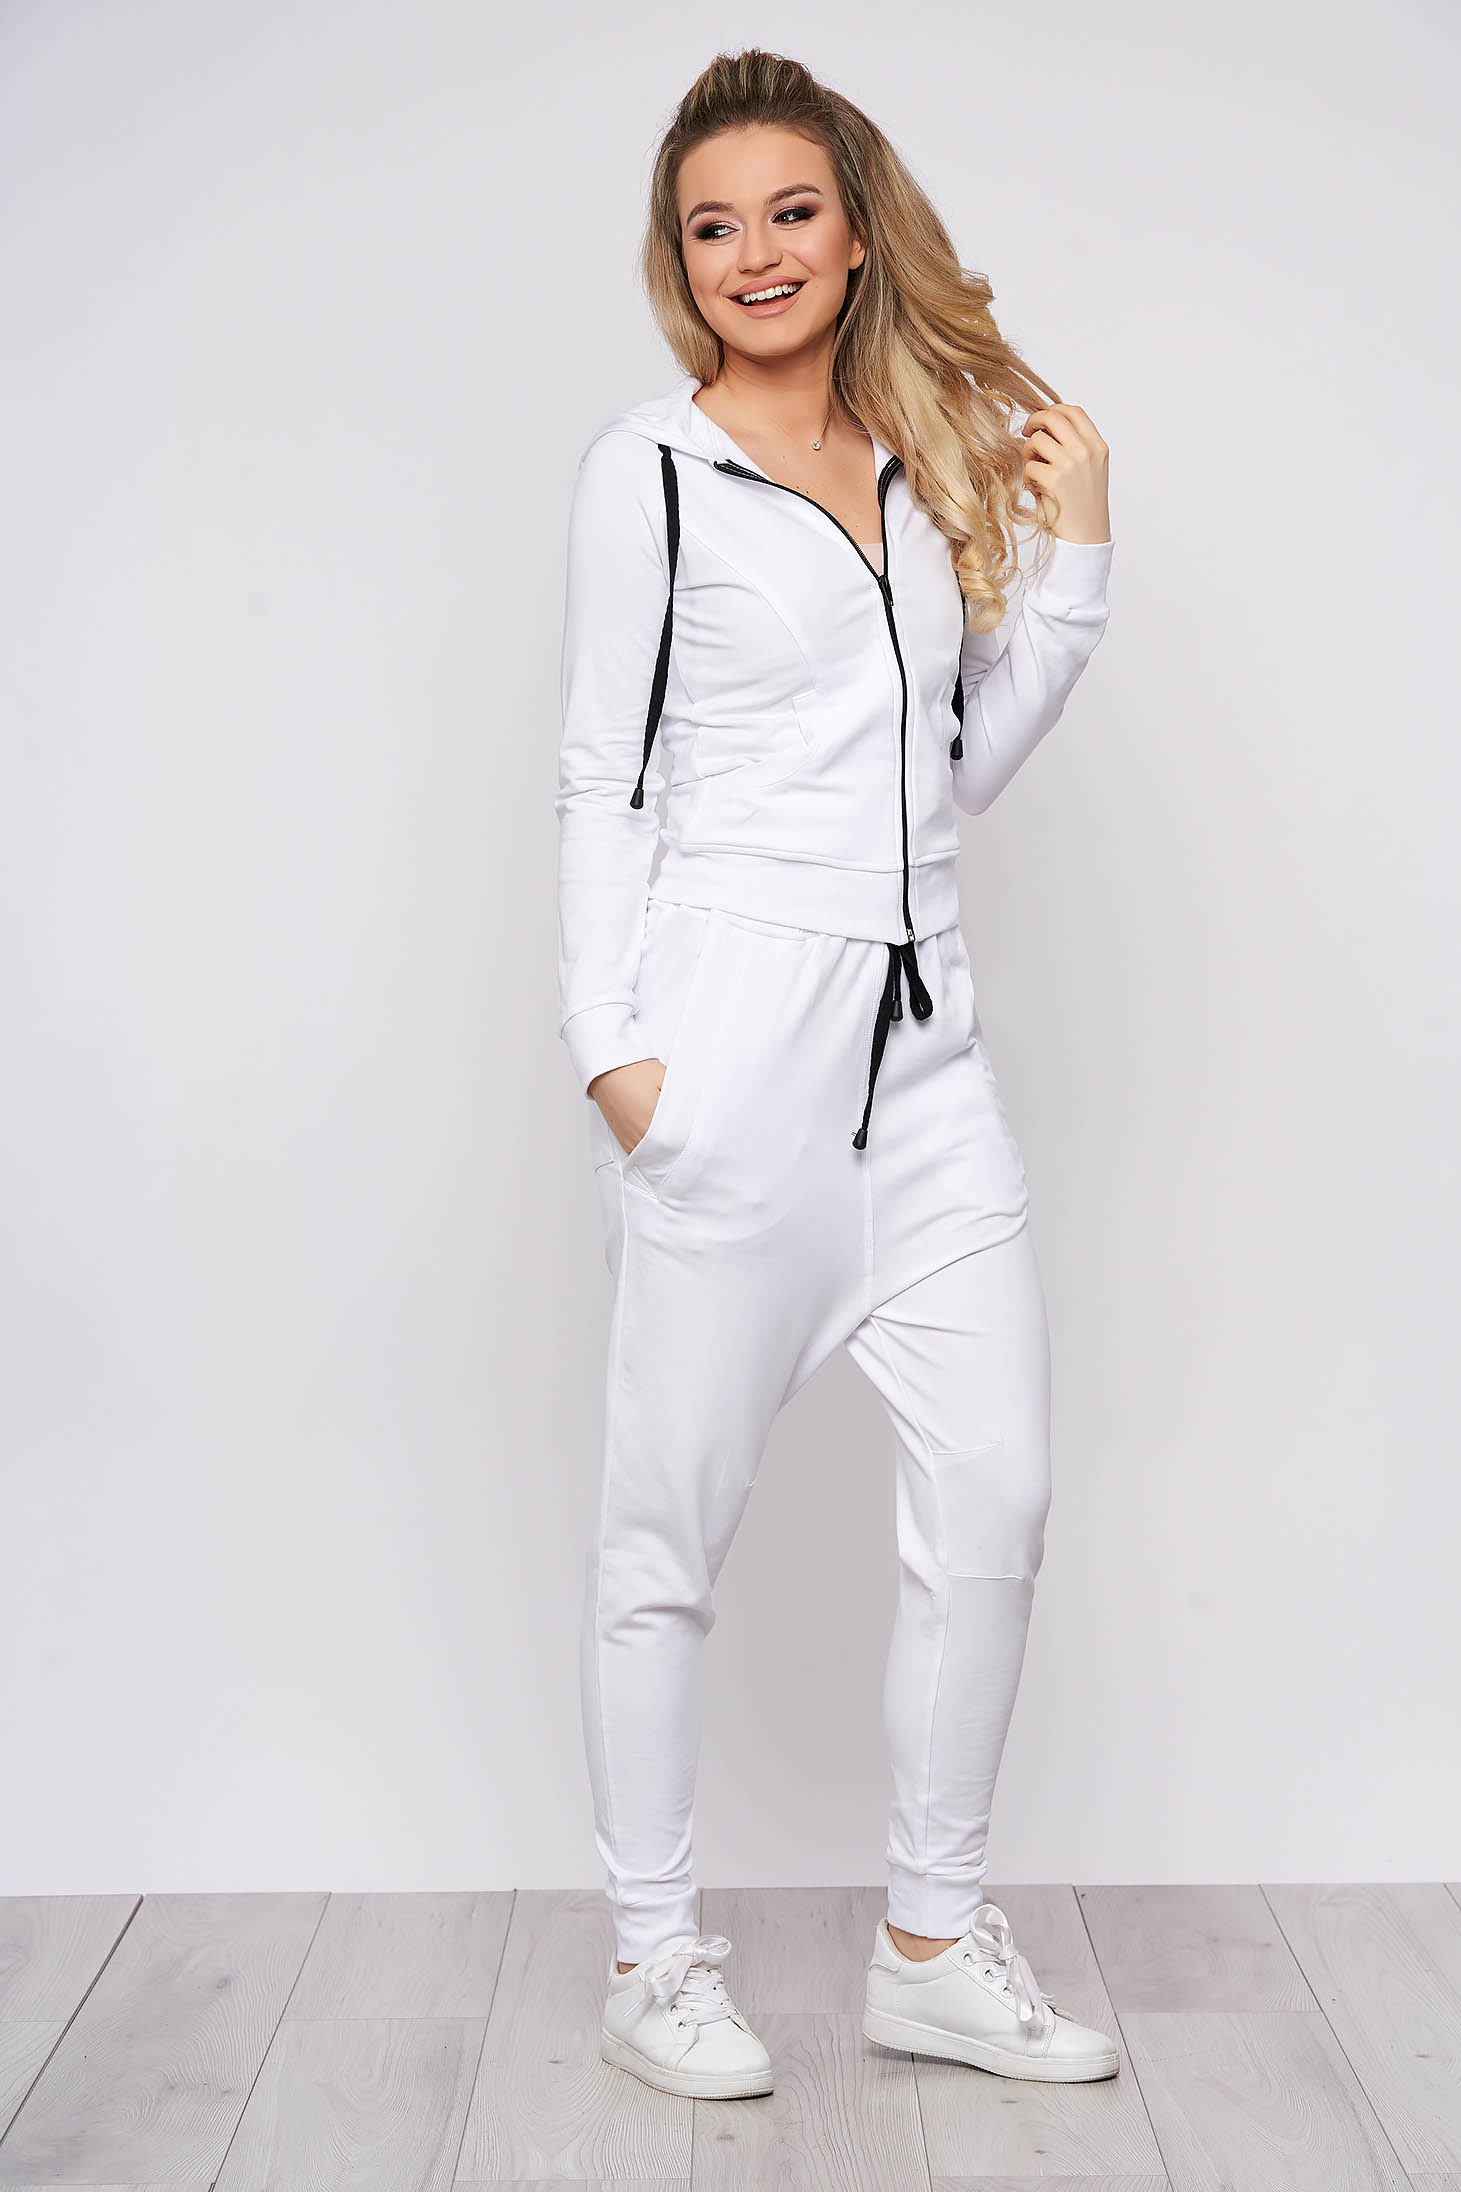 SunShine white casual set from 2 pieces slightly elastic cotton